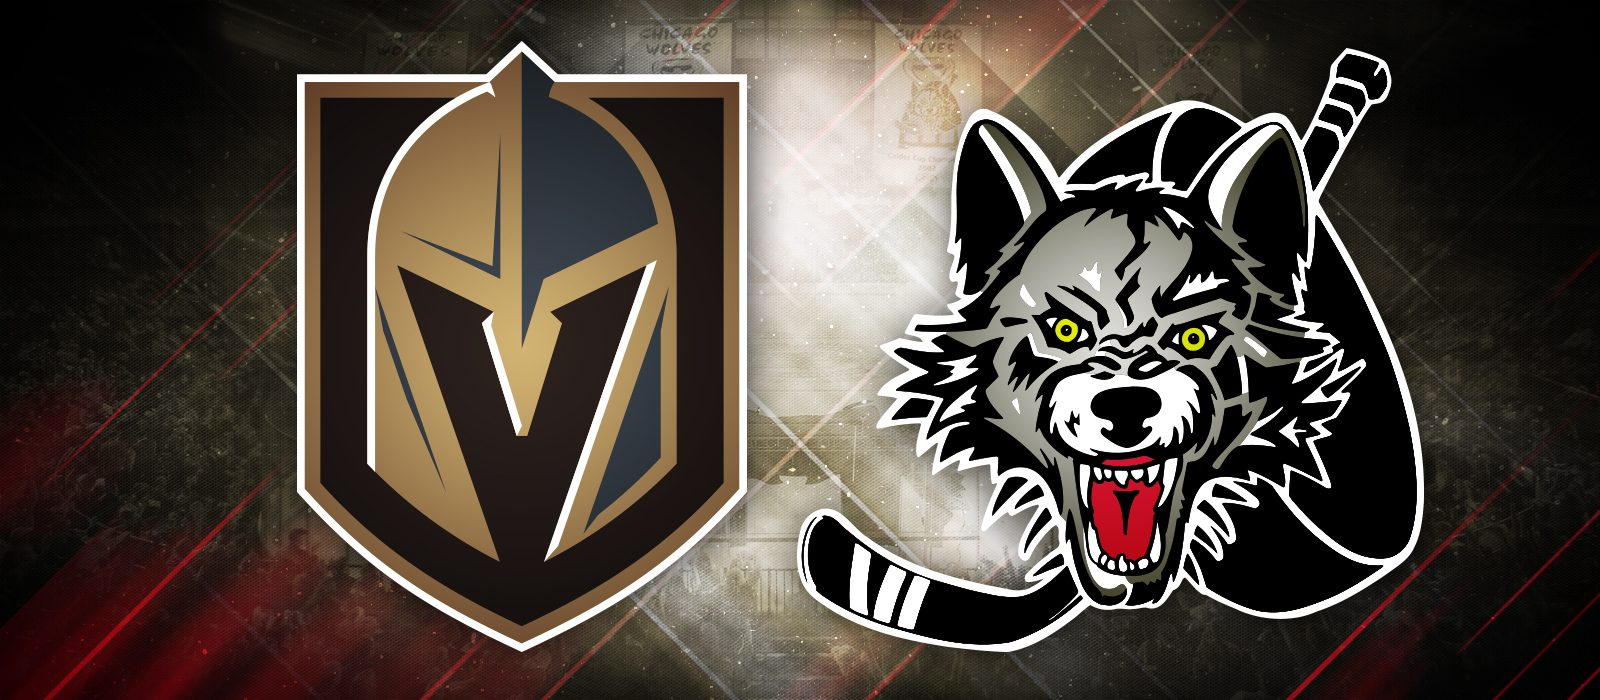 Wolves Join Forces with Vegas Golden Knights - Chicago Wolves